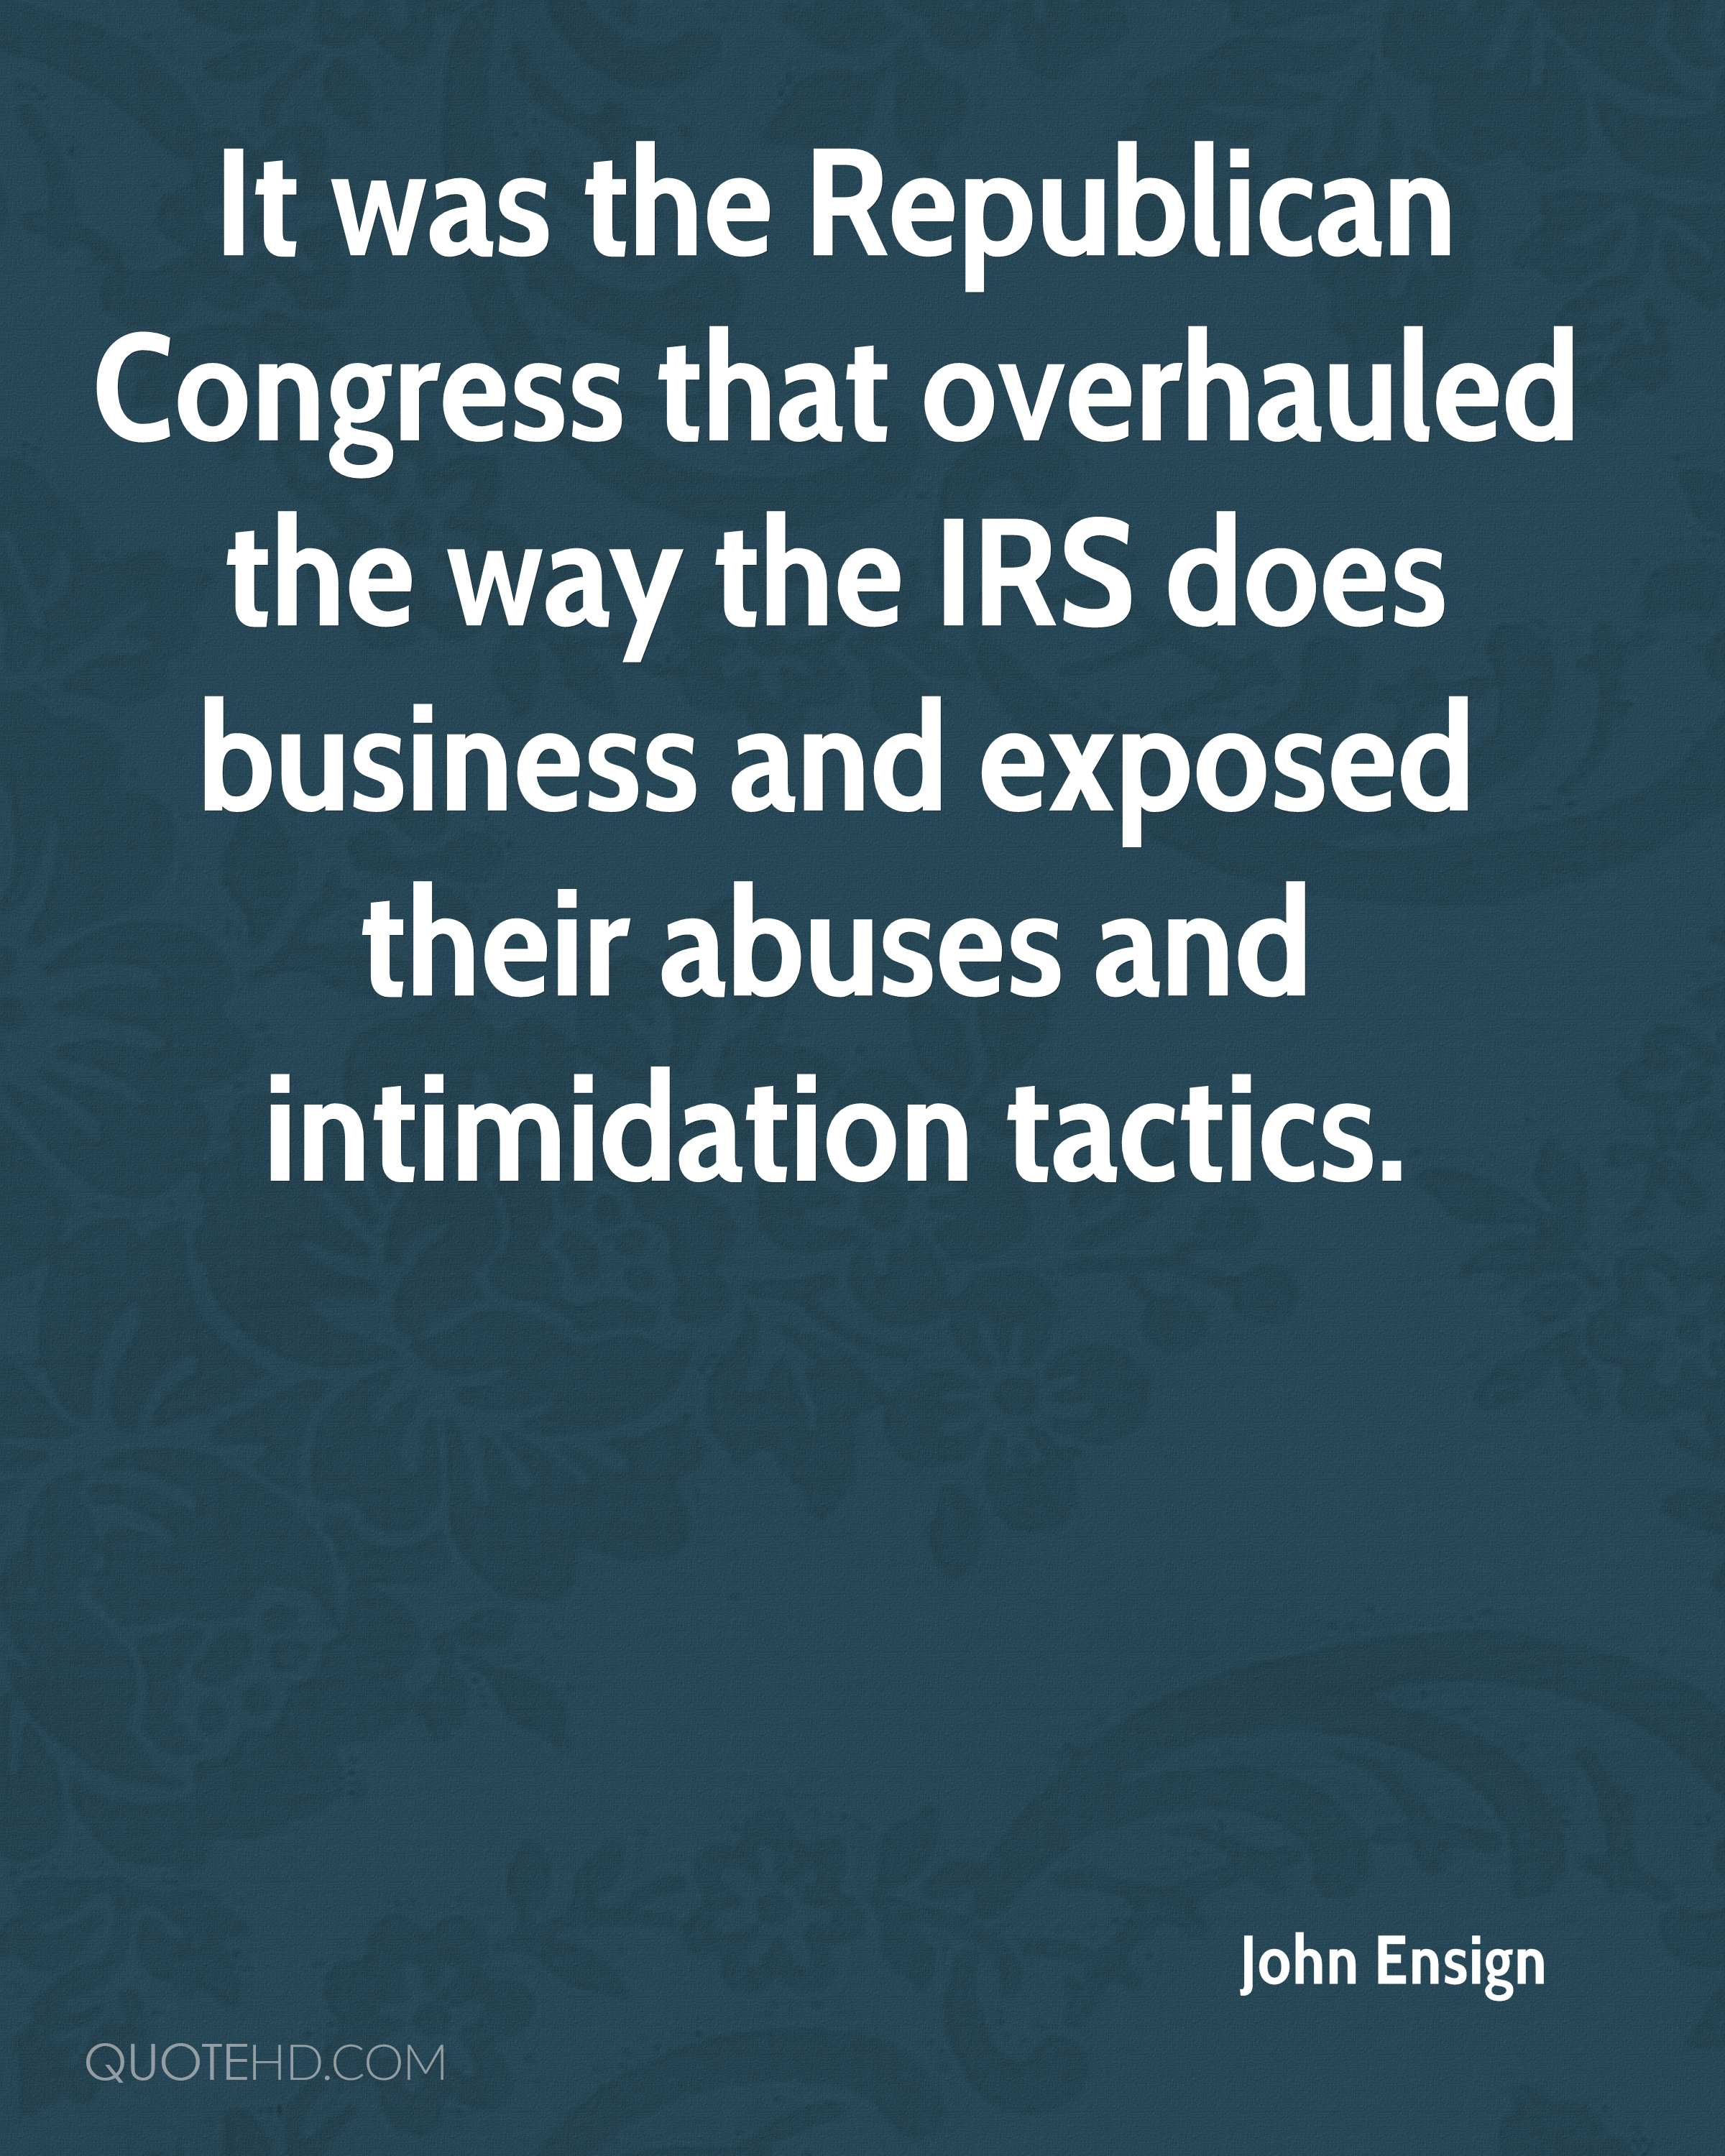 It was the Republican Congress that overhauled the way the IRS does business and exposed their abuses and intimidation tactics.